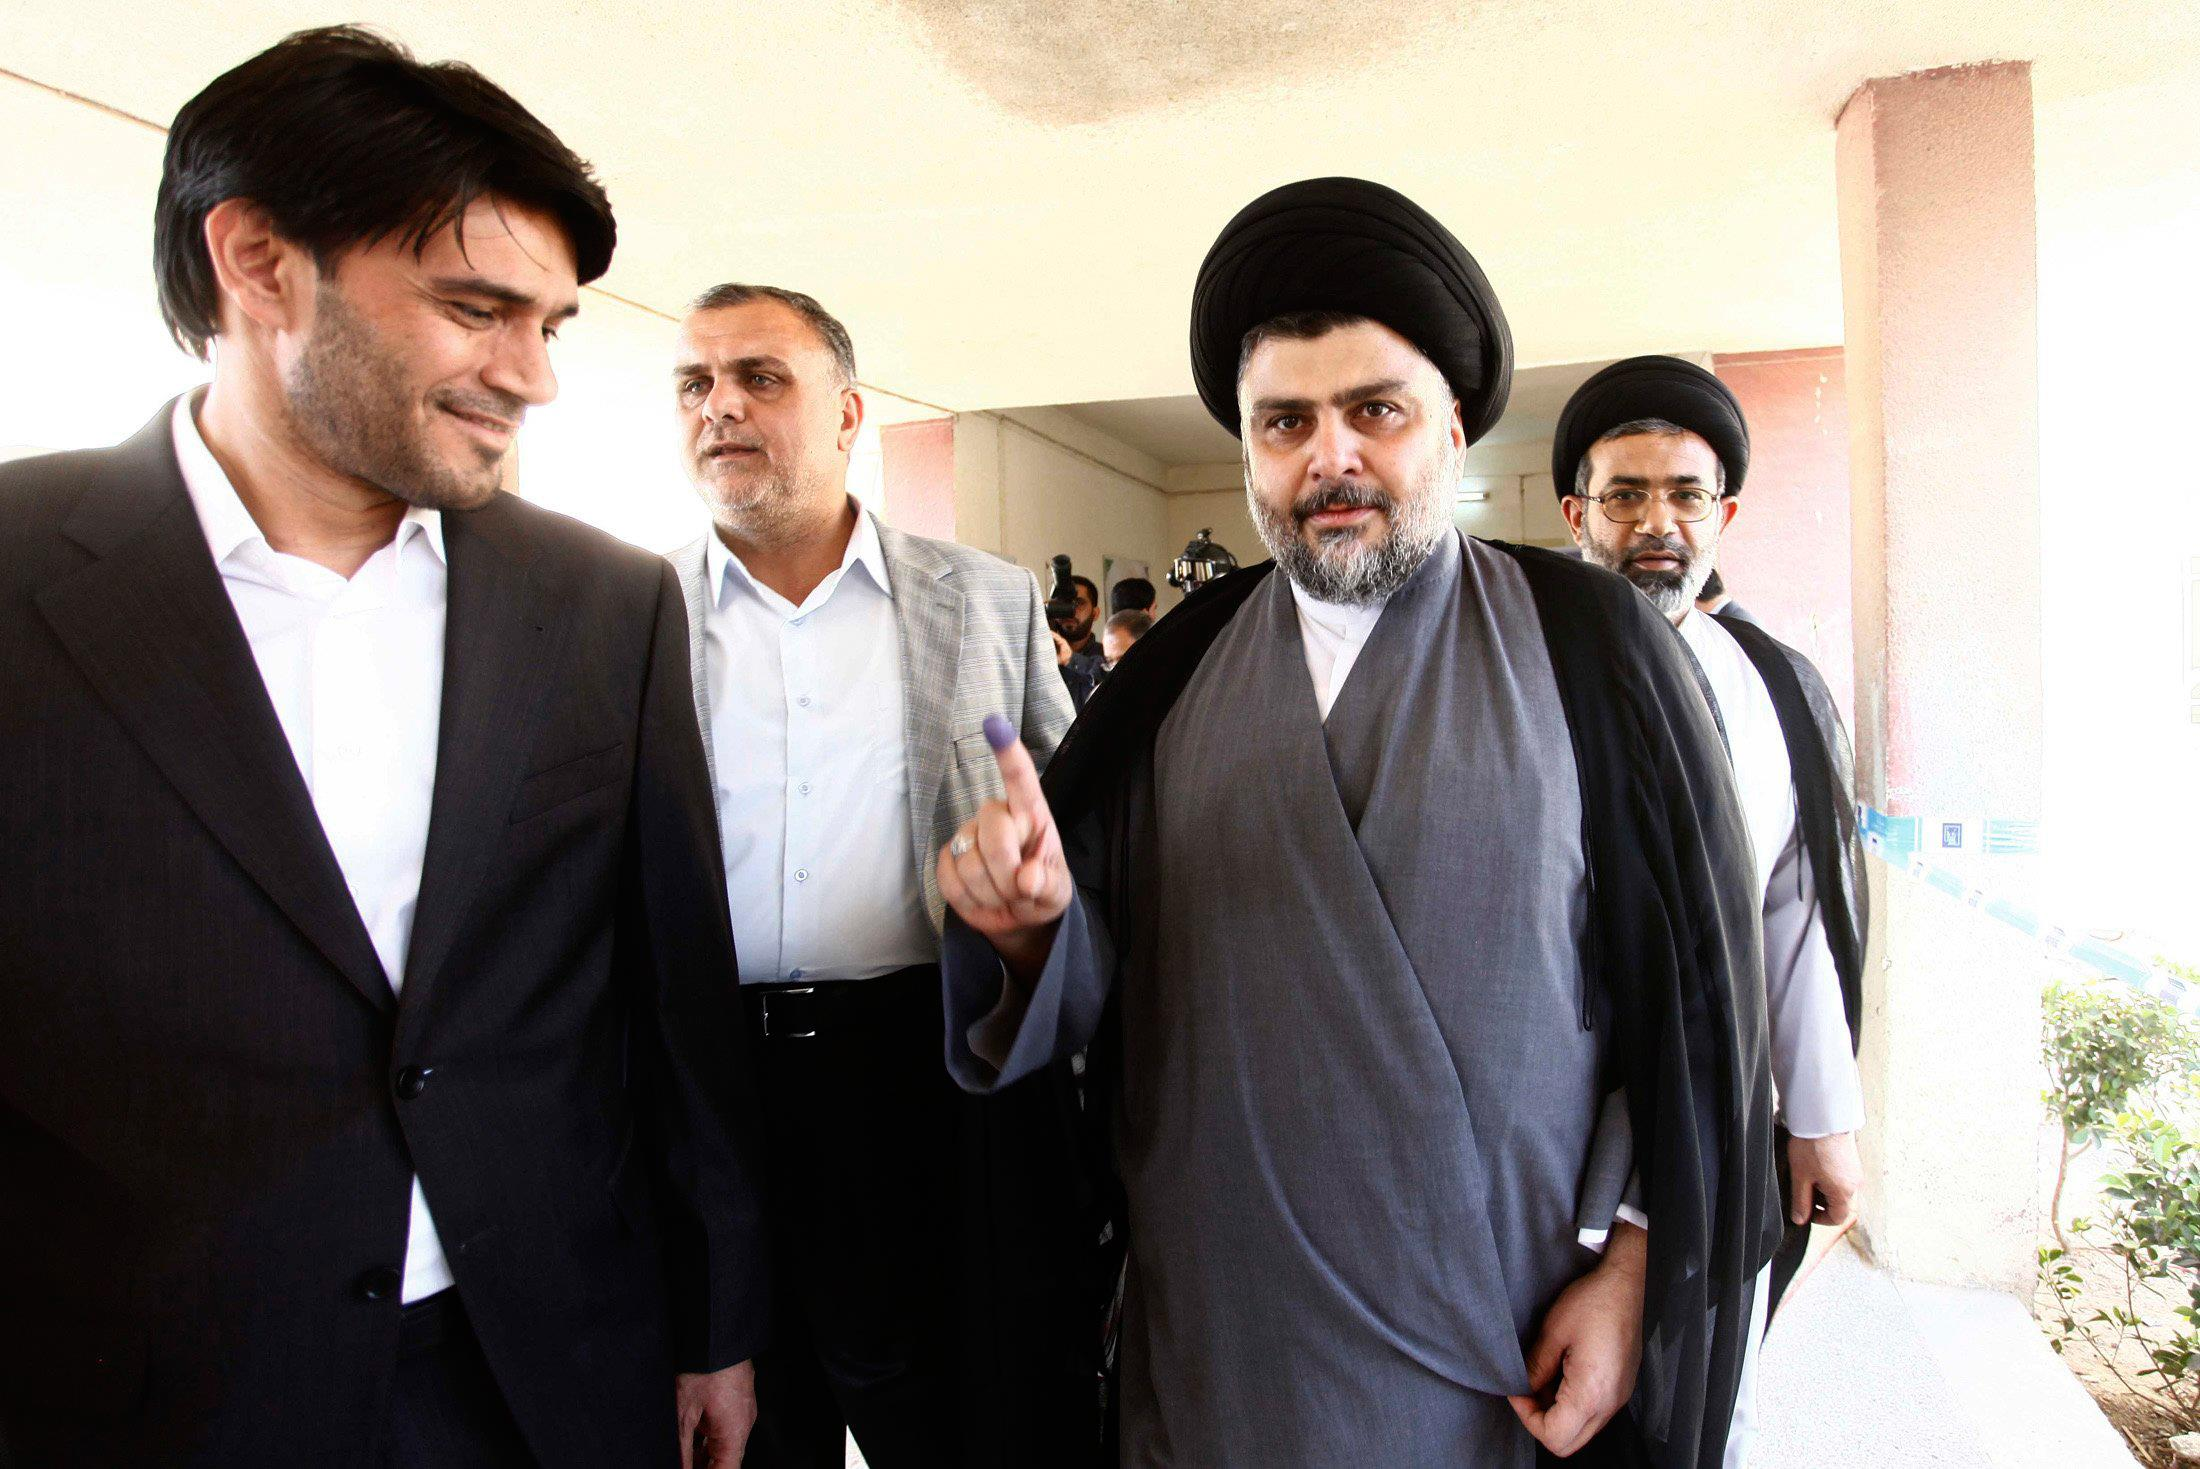 https://i2.wp.com/media1.s-nbcnews.com/i/newscms/2014_26/525221/140623-moqtada-al-sadr-iraq-1135a_962439c01465204013596ffe27d3f055.jpg